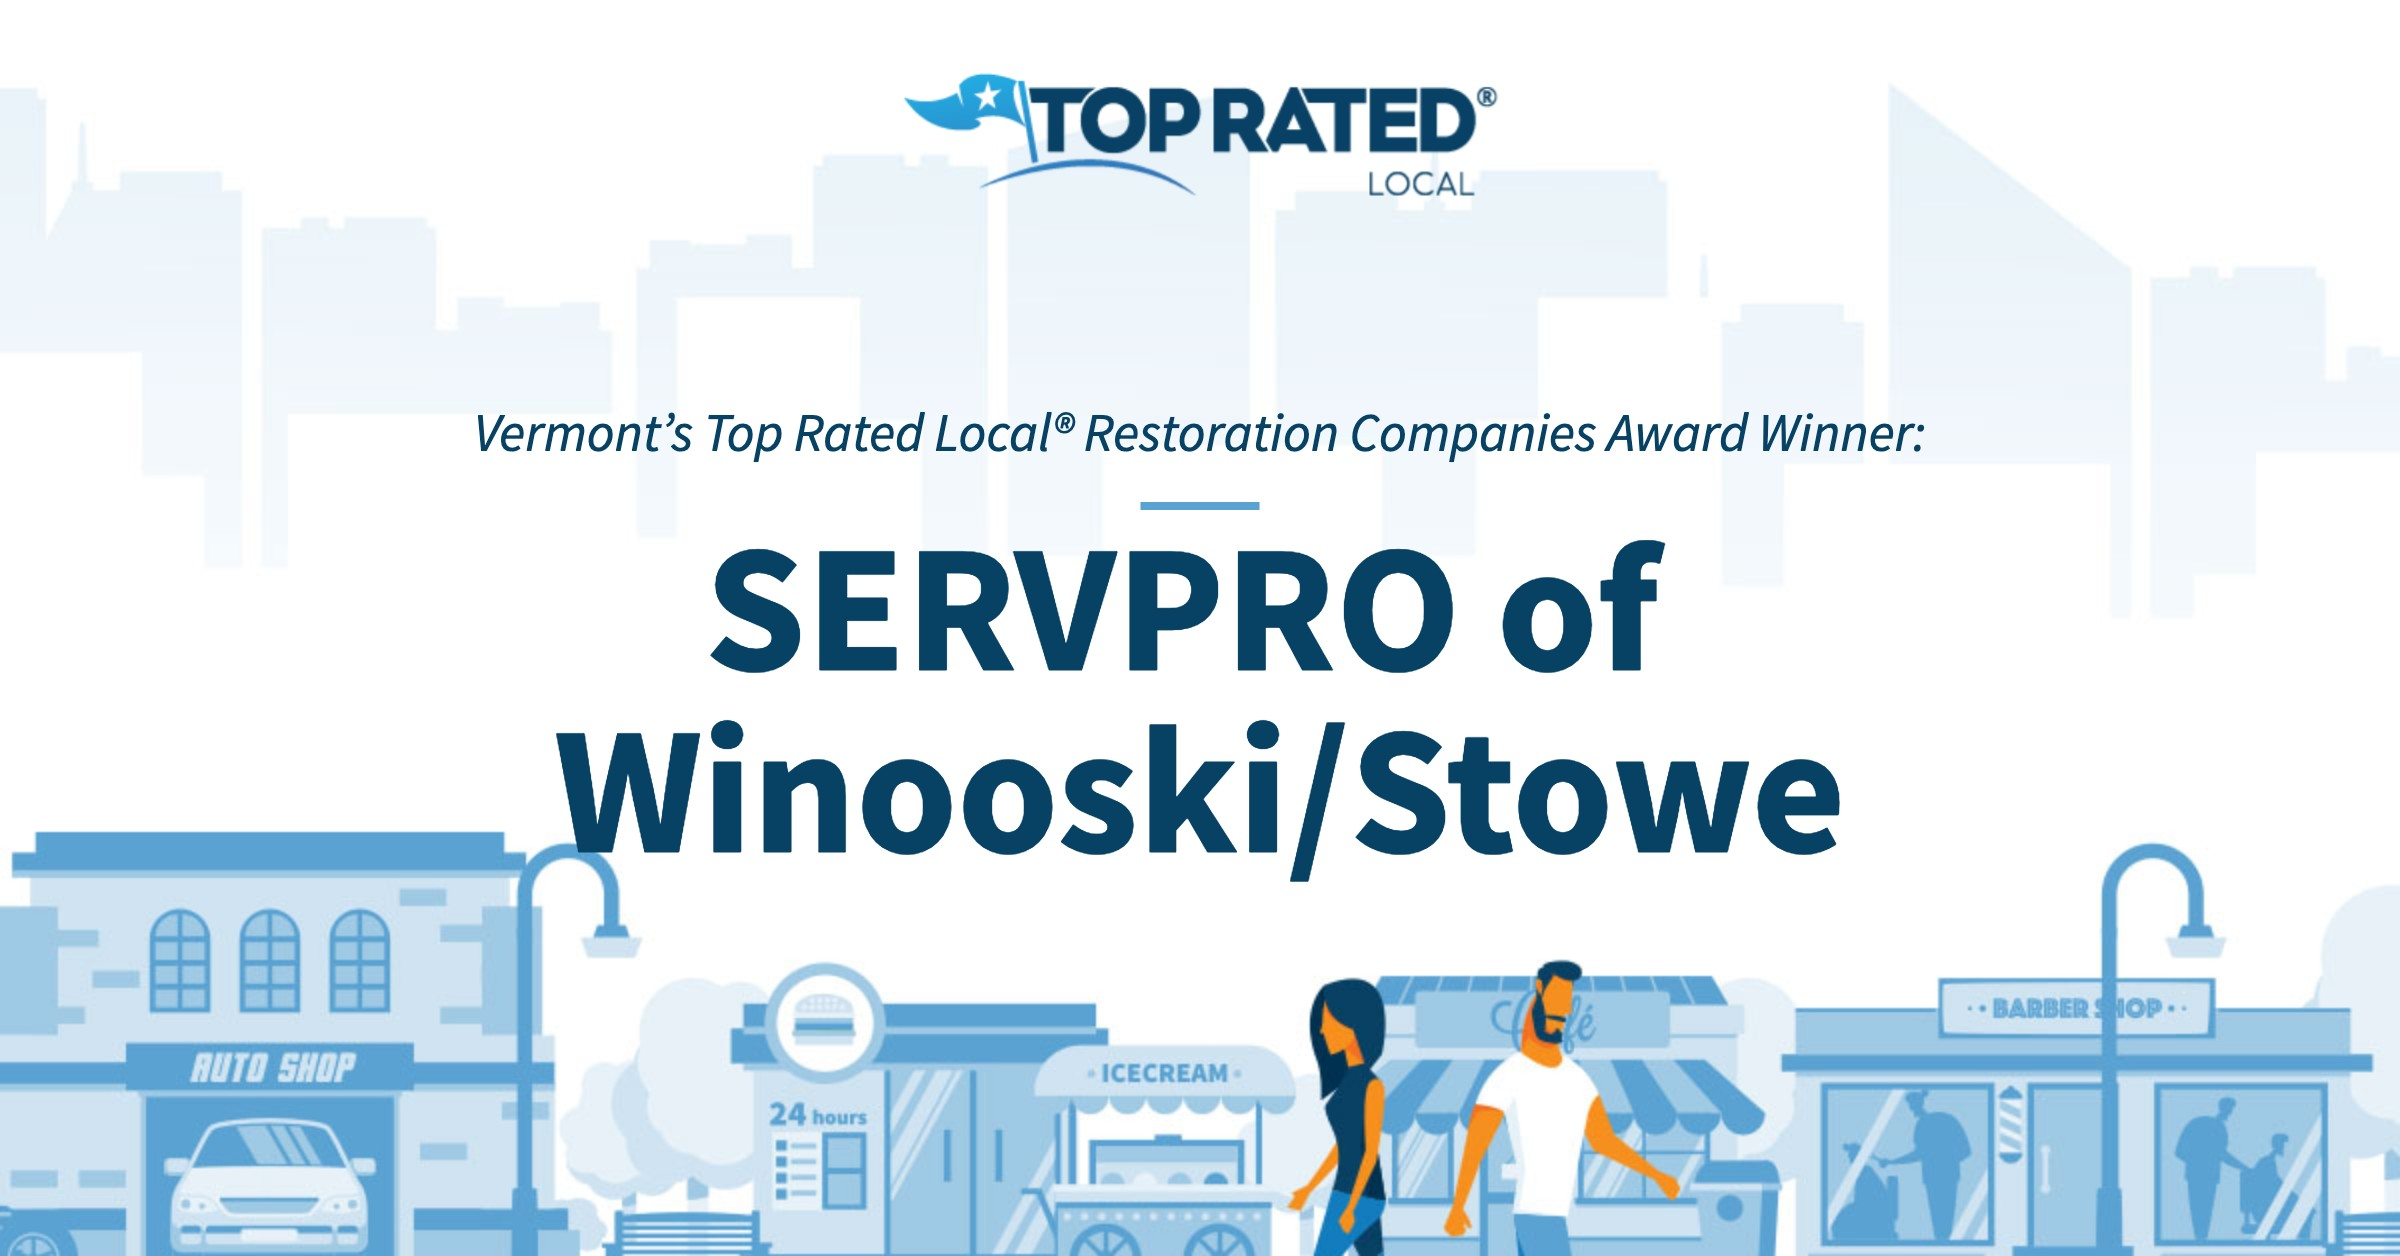 Vermont's Top Rated Local® Restoration Companies Award Winner: SERVPRO of Winooski/Stowe